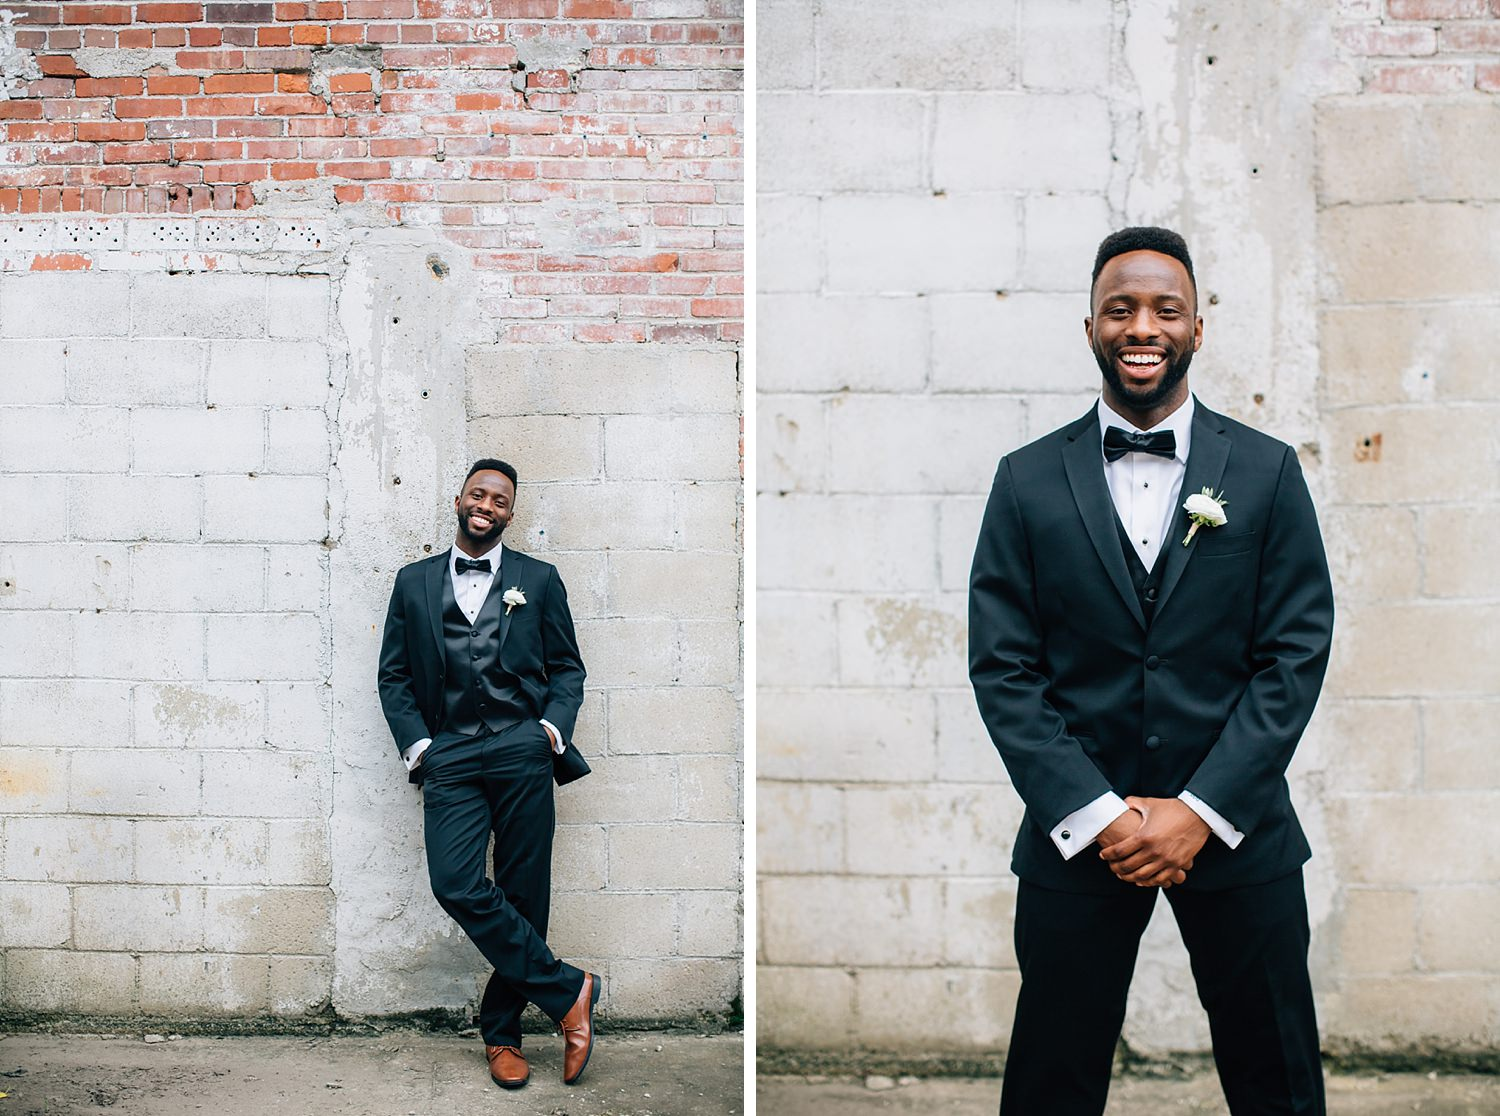 groom portraits outdoors in natural light